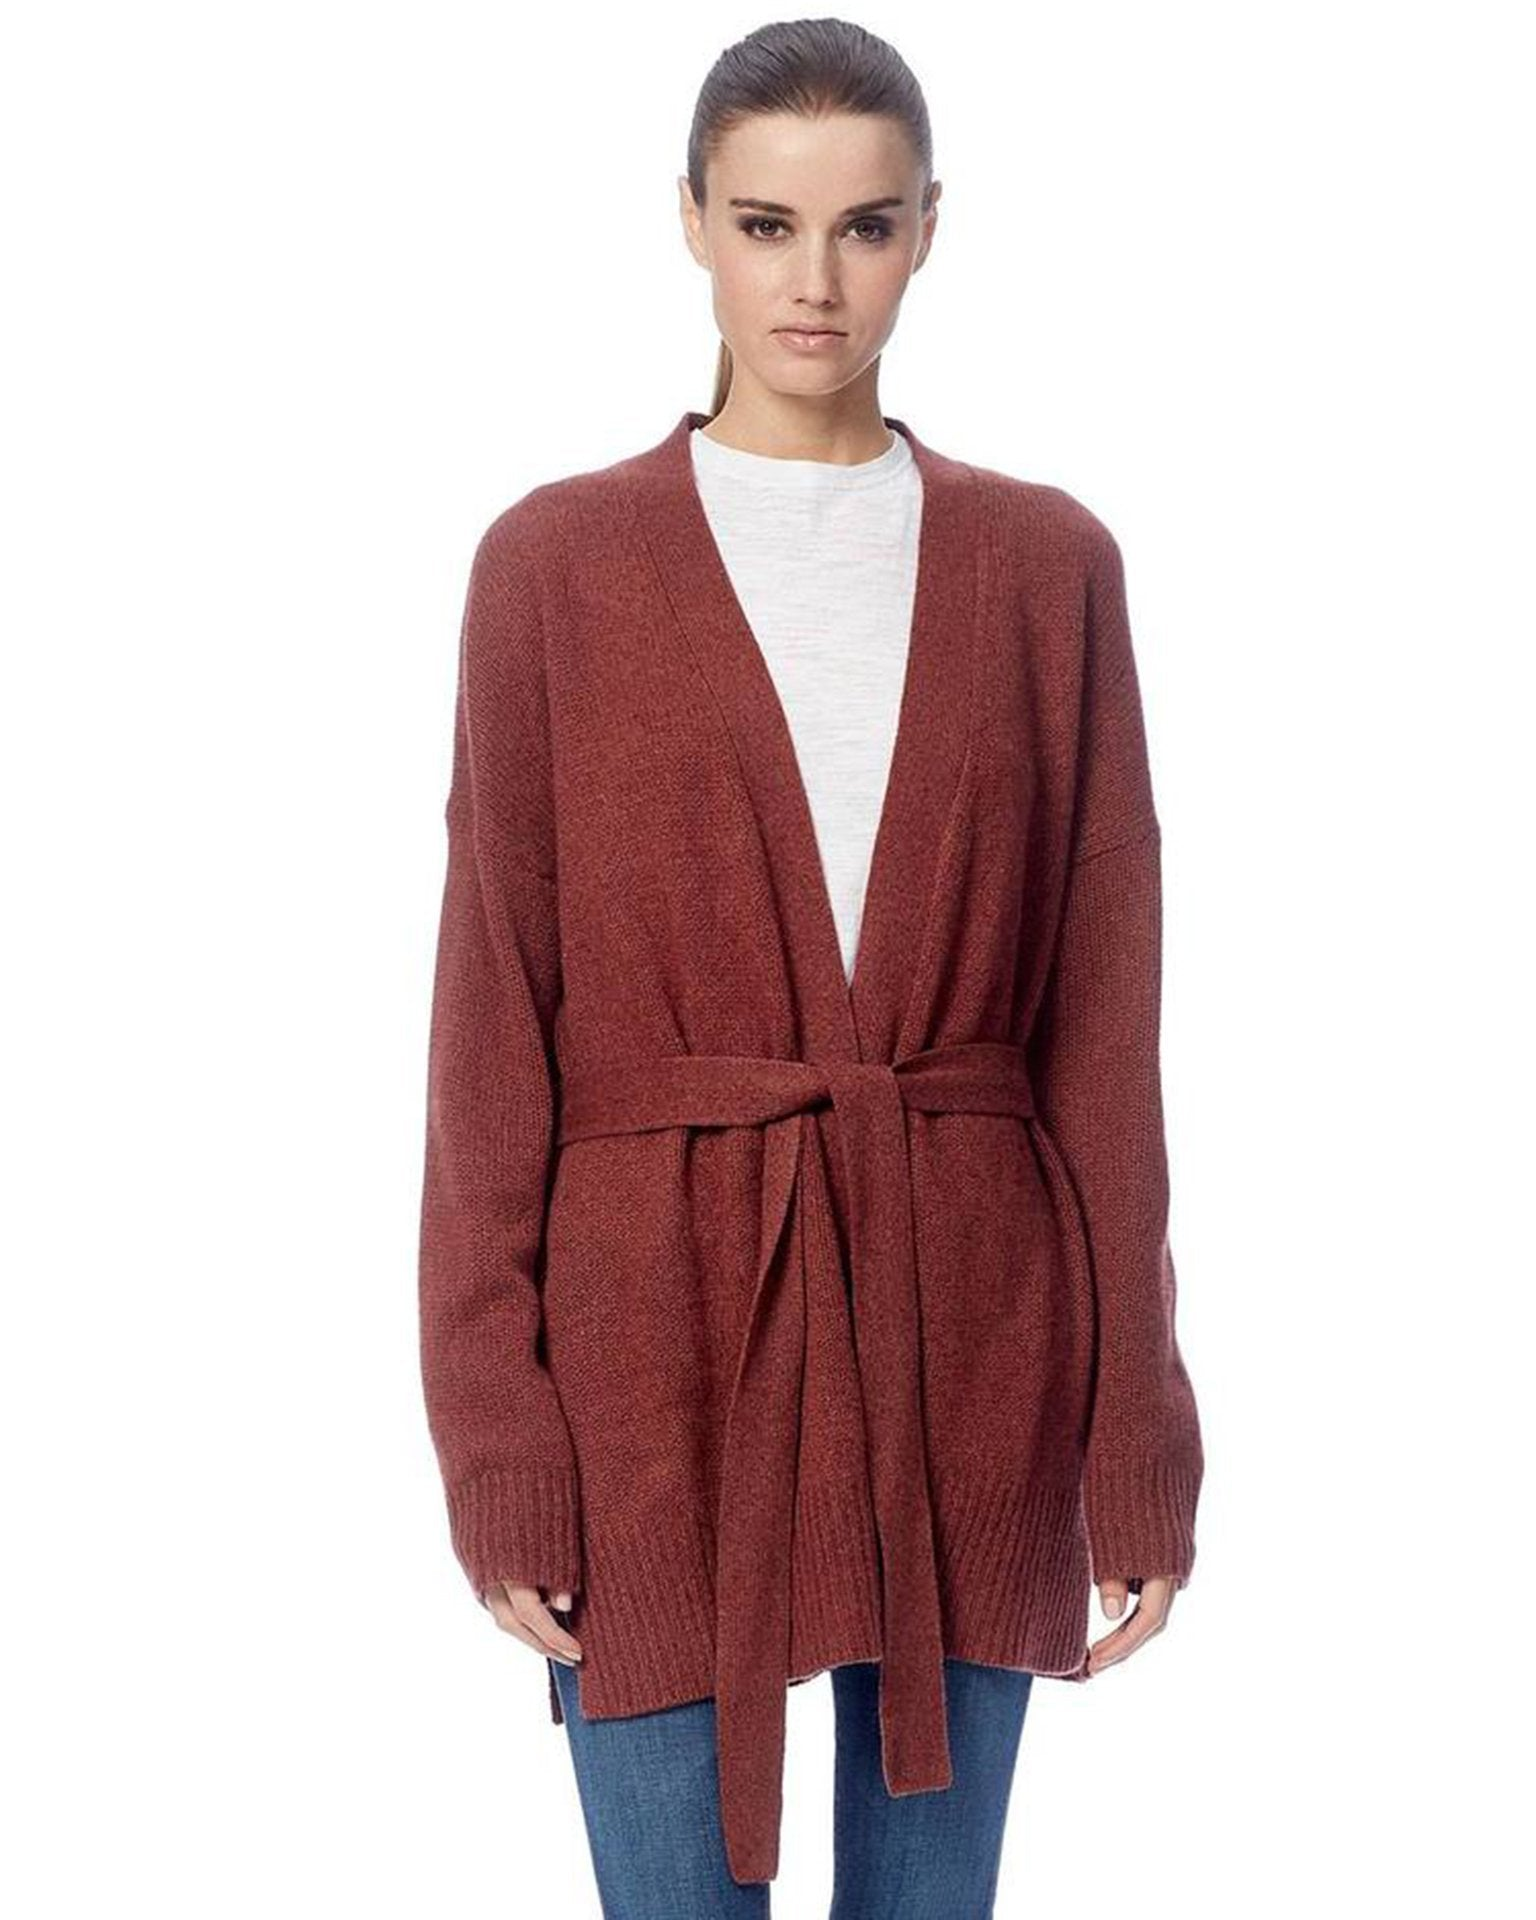 360 Cashmere Clothing Rosewood / XS Adeline Tie Cardigan in Rosewood